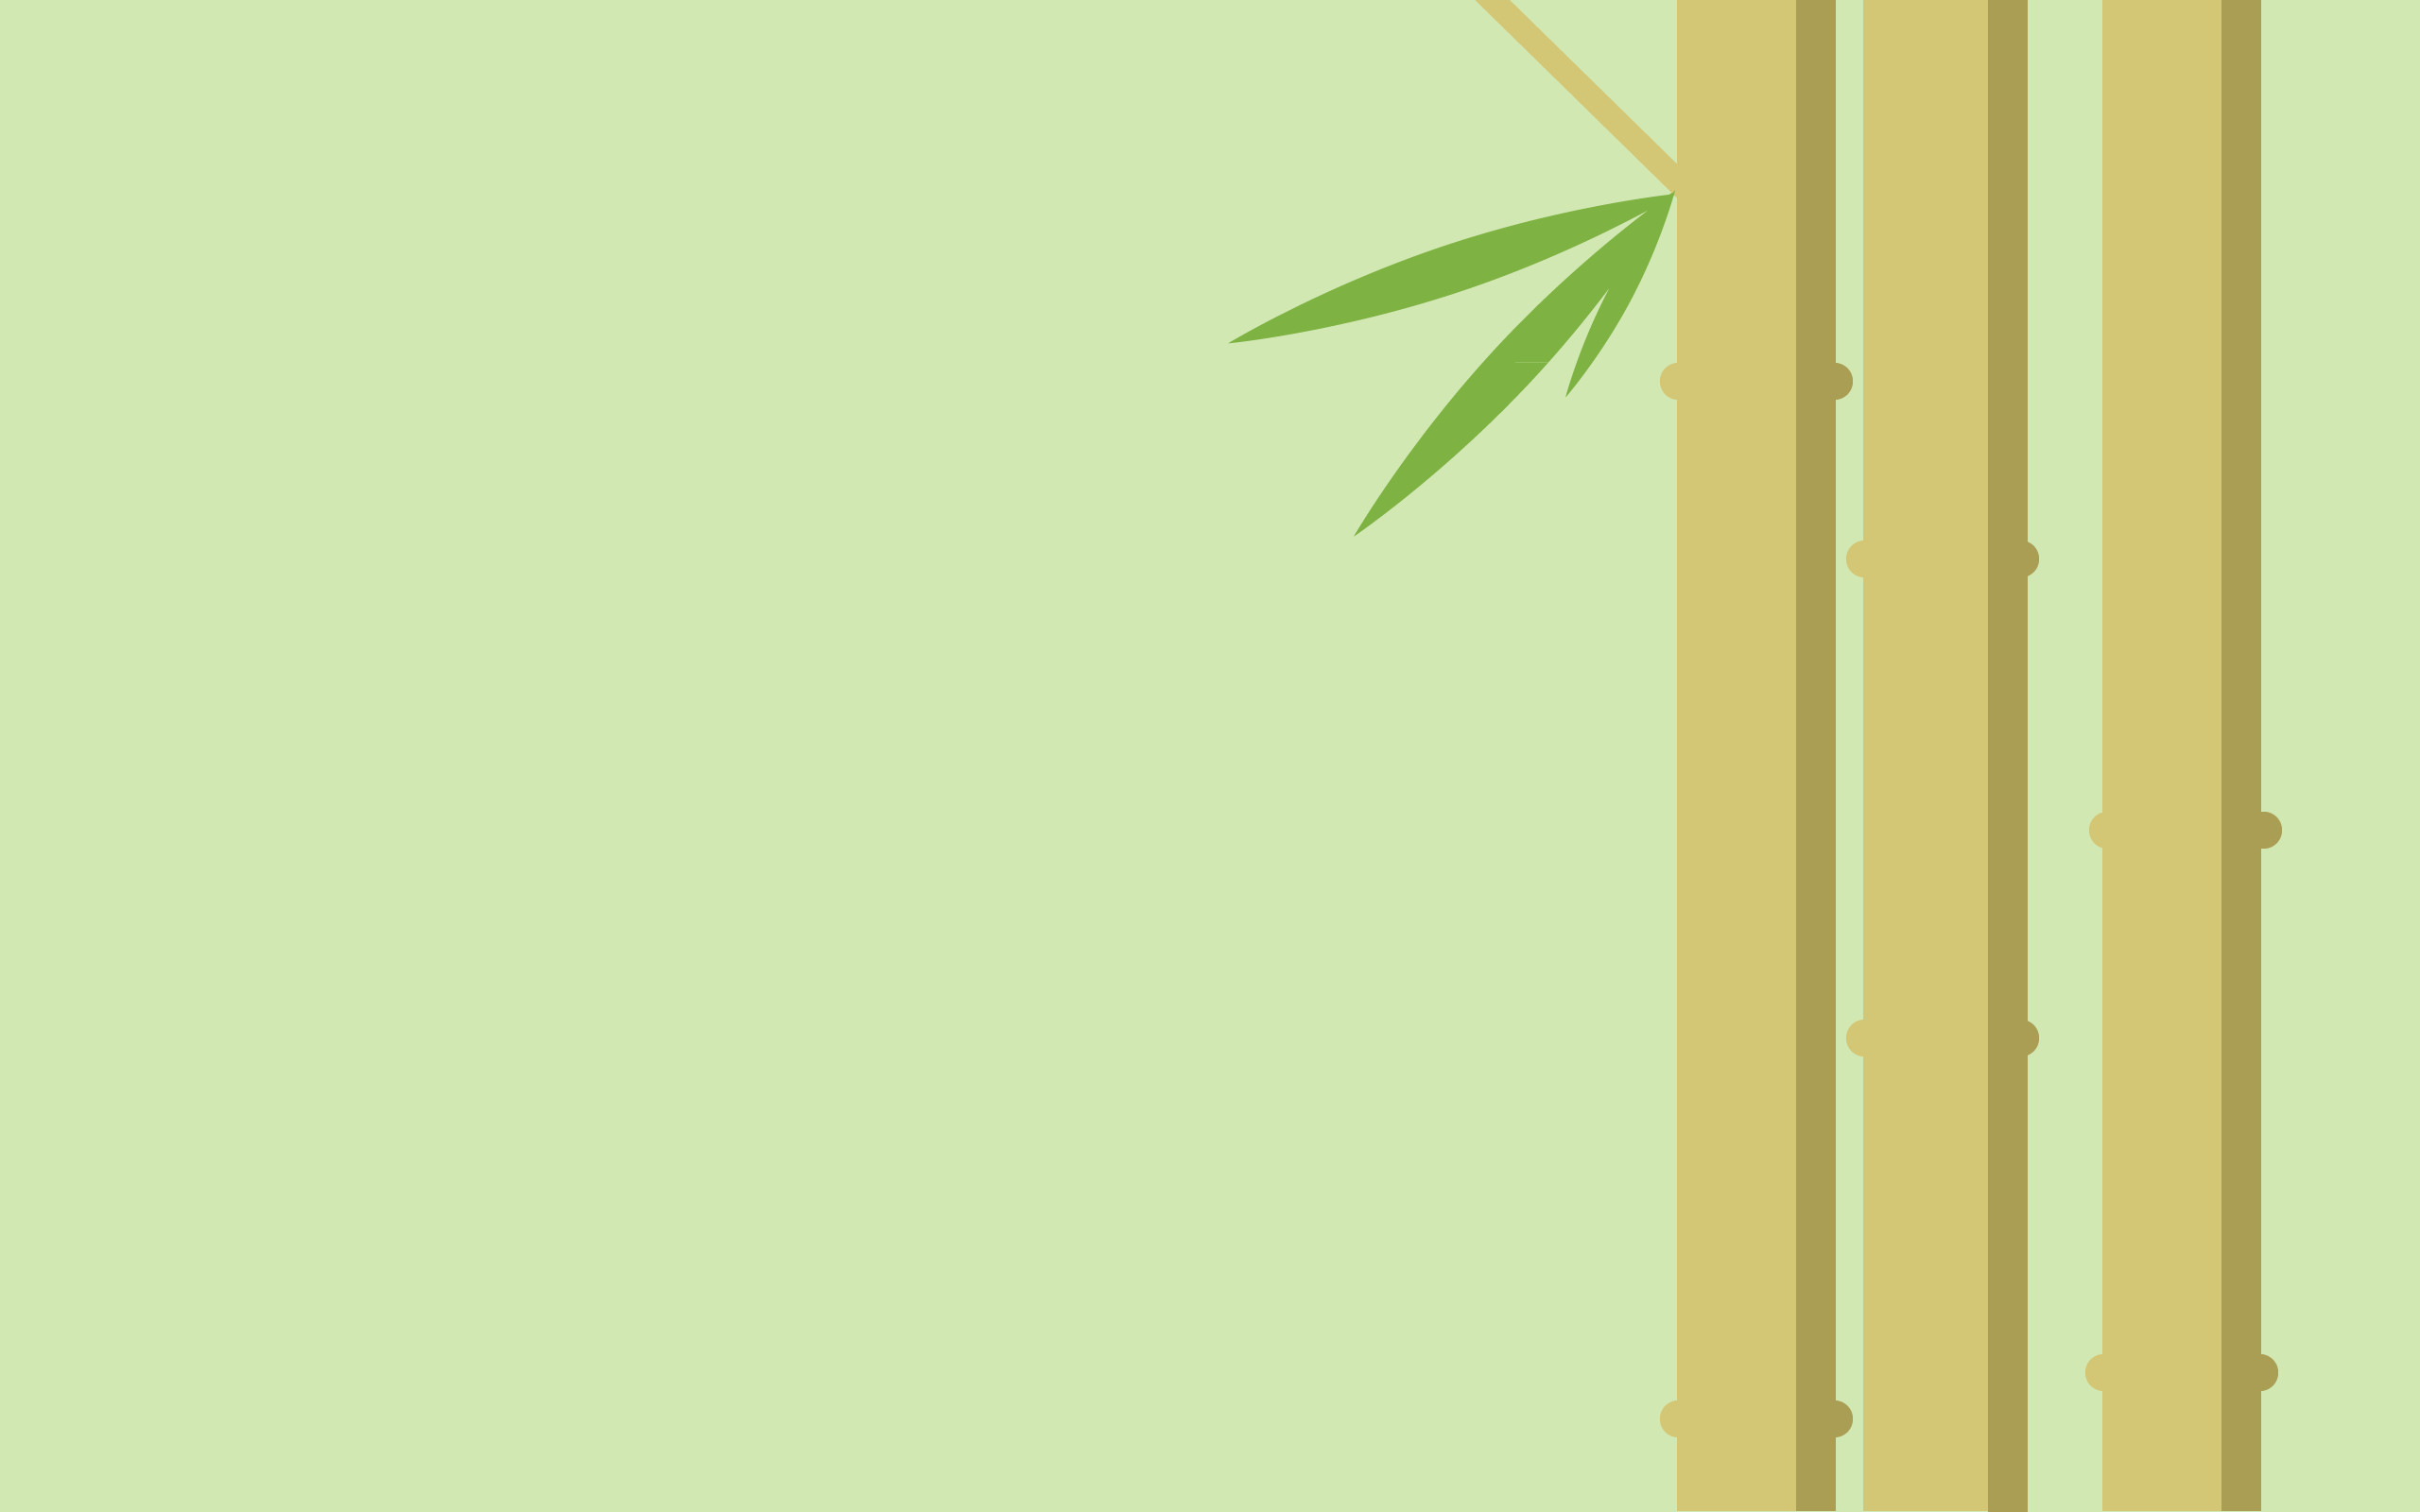 2560x1600 General  minimalism bamboo digital art simple background plants